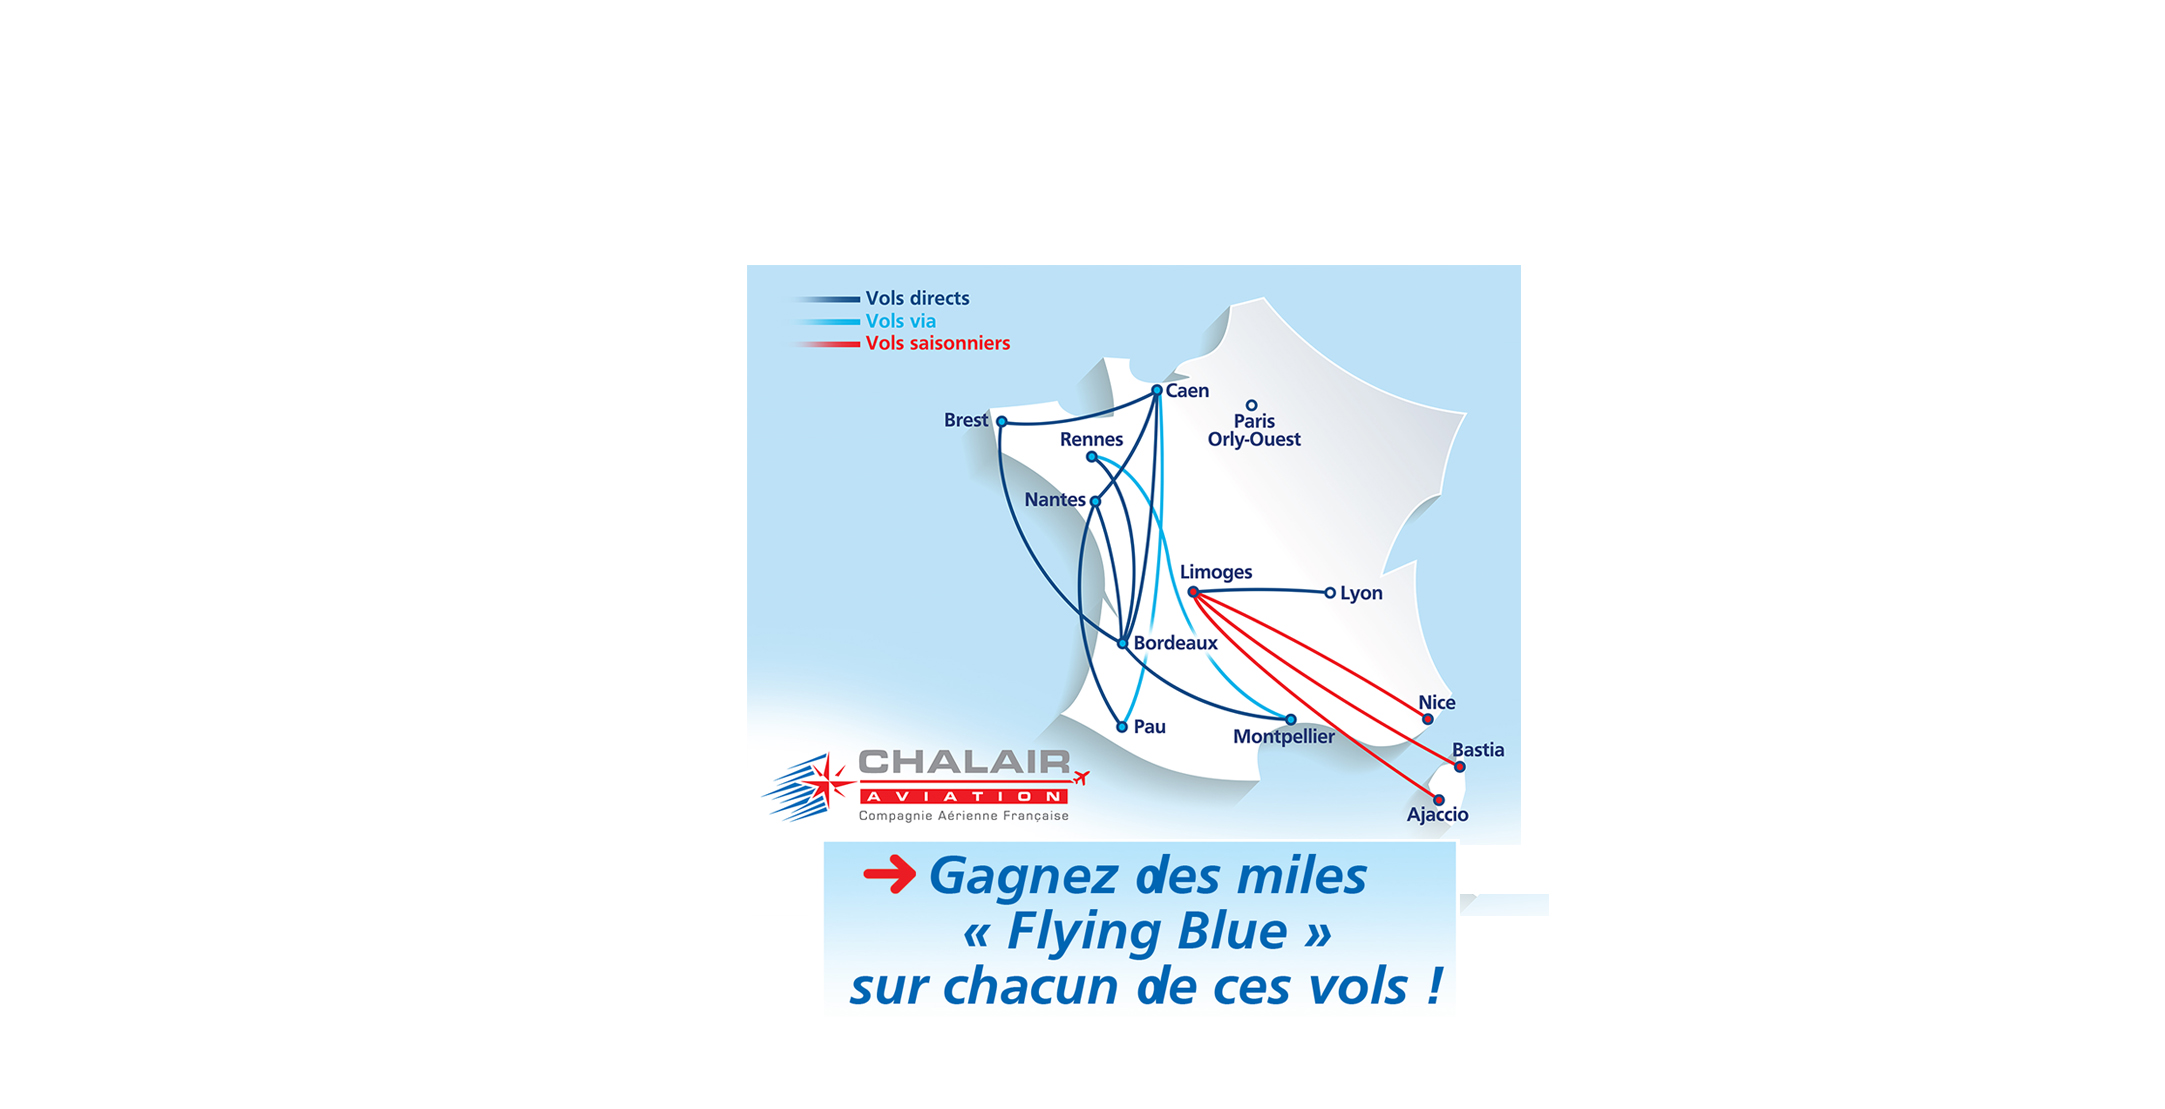 images/Cartes-Chalair/Cartes-2018/Slideshow-Carte-Chalair-05sept2018-a.jpg